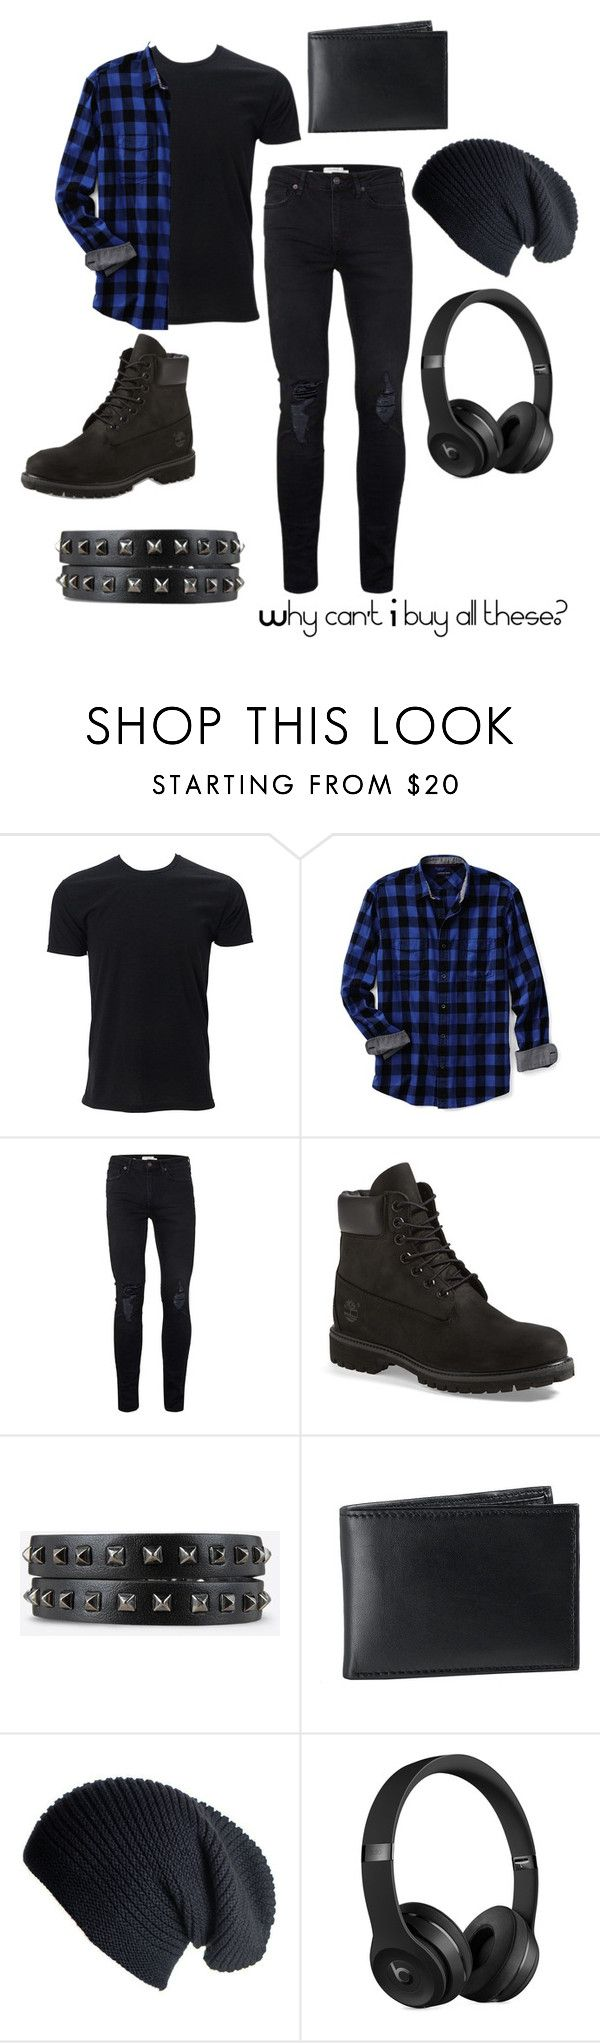 """The Jealousy Outfit"" by robbietheraccoon ❤ liked on Polyvore featuring Lands' End, Topman, Timberland, BLACK BROWN 1826, Black, Beats by Dr. Dre, men's fashion and menswear"